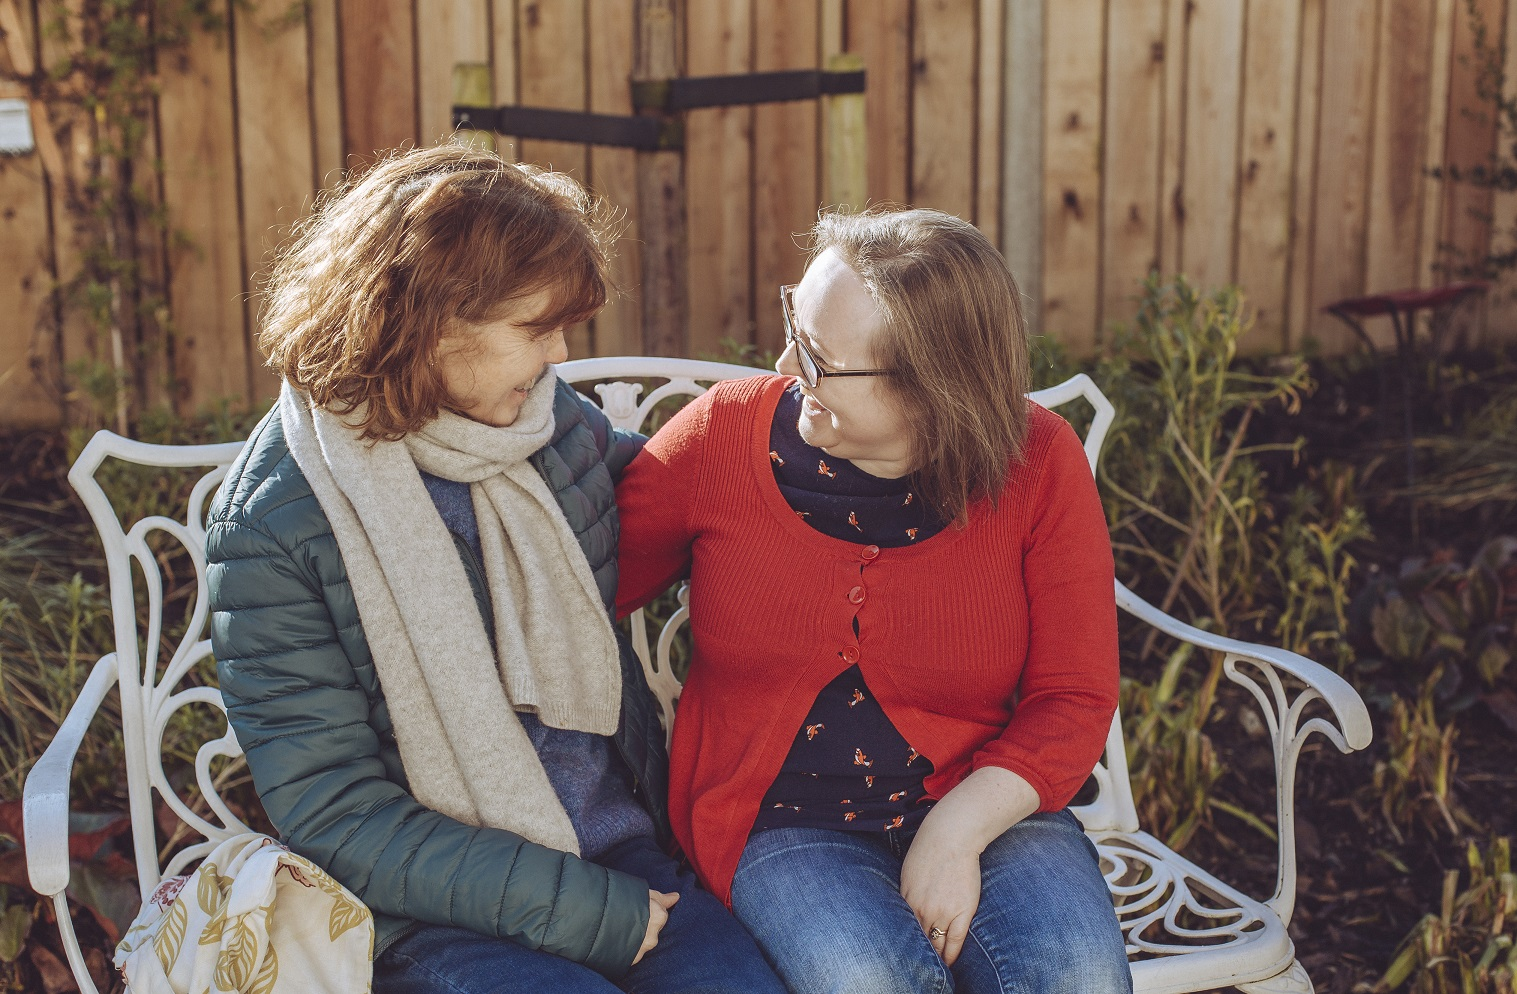 Two patients sitting on a bench, arm around each other smiling